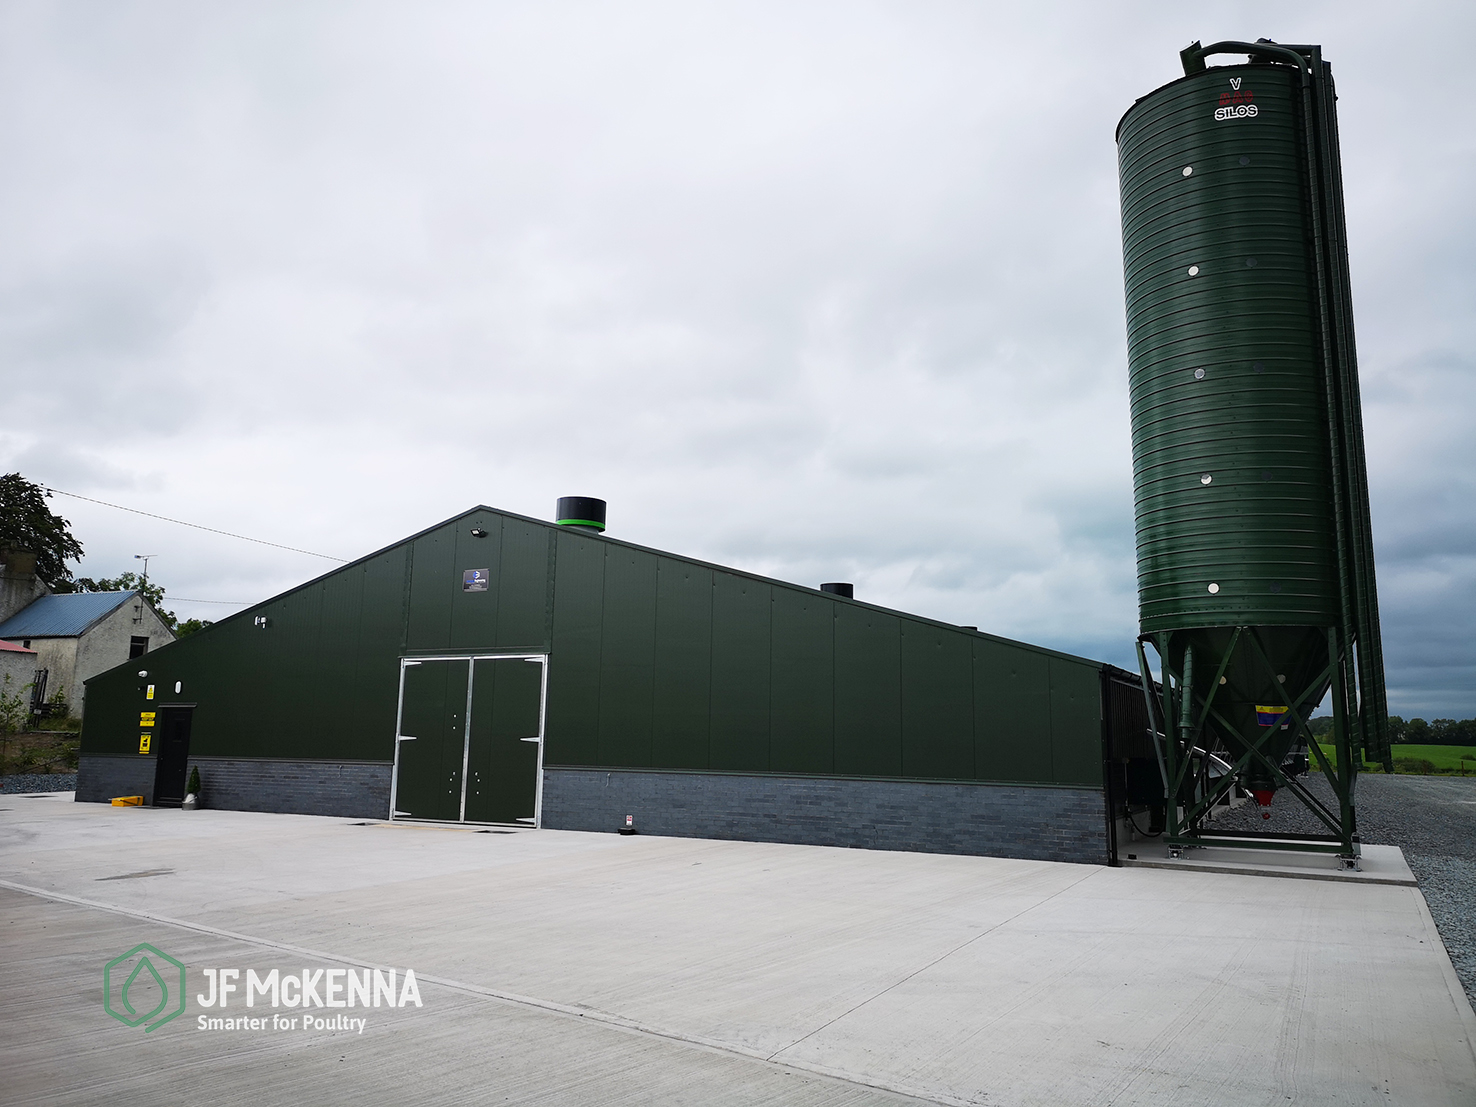 BROILER PROJECT    Republic of Ireland   In 2019, JF McKenna fitted out this impressively finished 40,000 unit poultry house in Monaghan, Ireland.